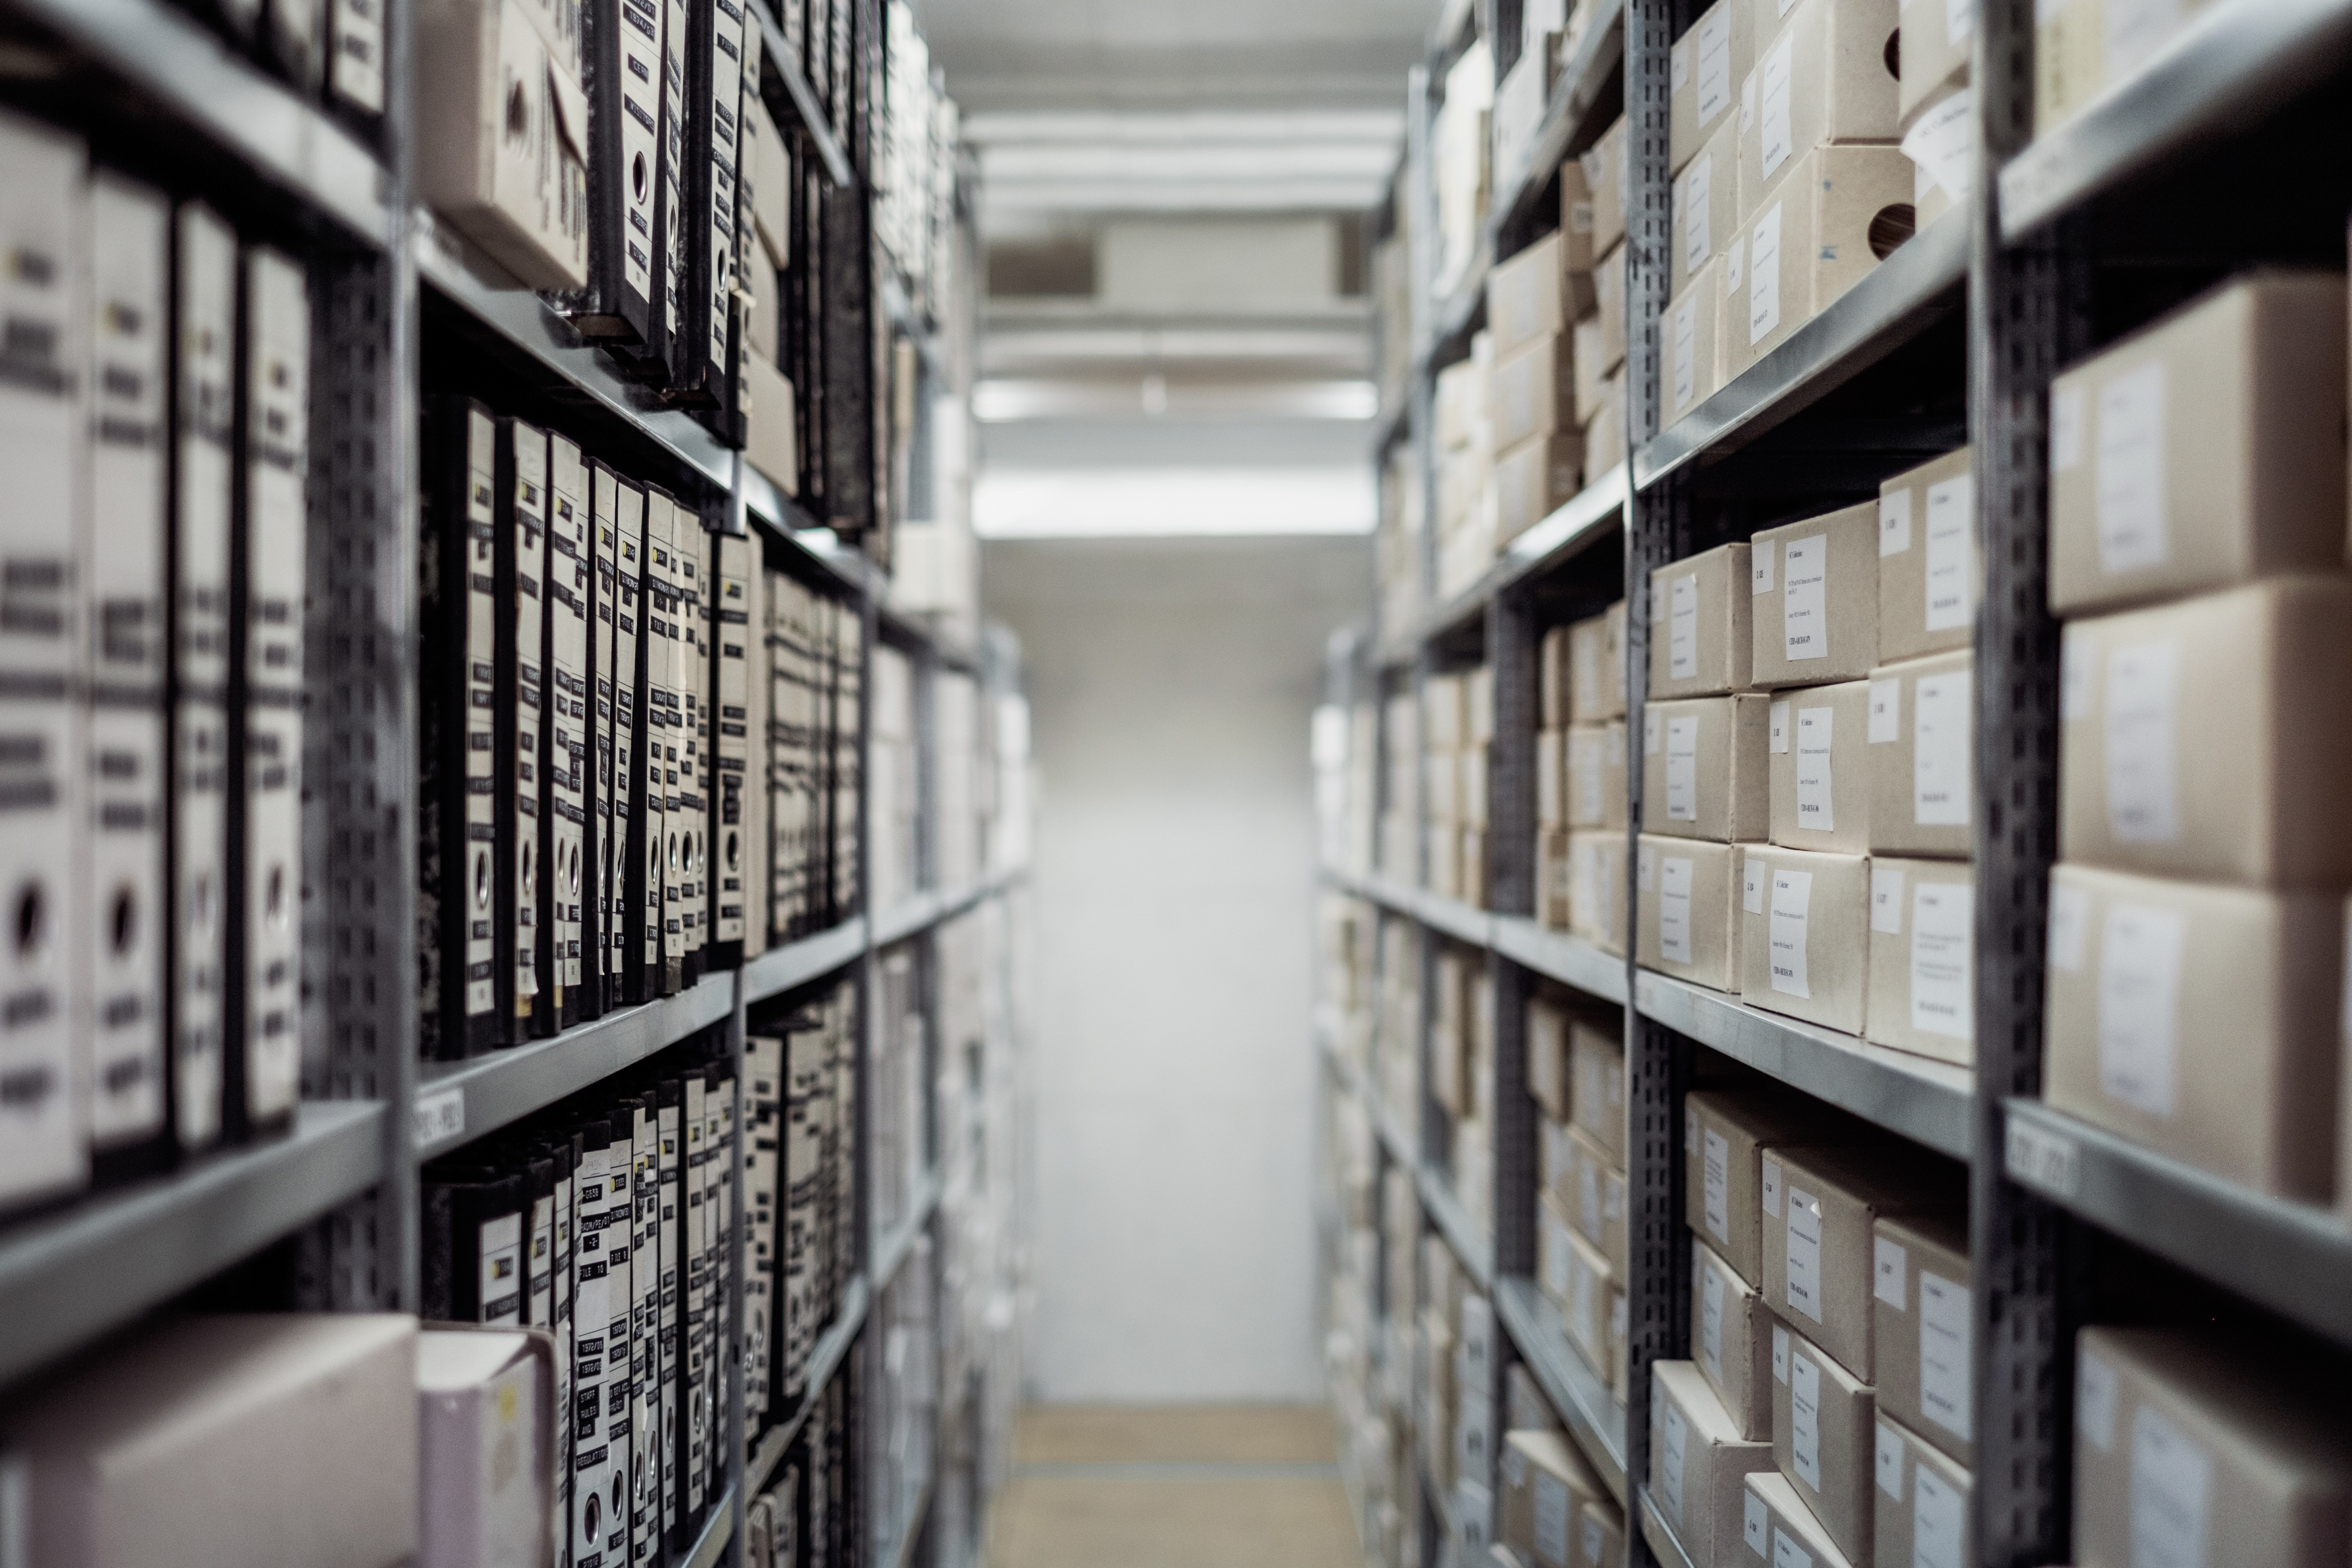 A black and white image of an archive, with folders and files lined up on shelves